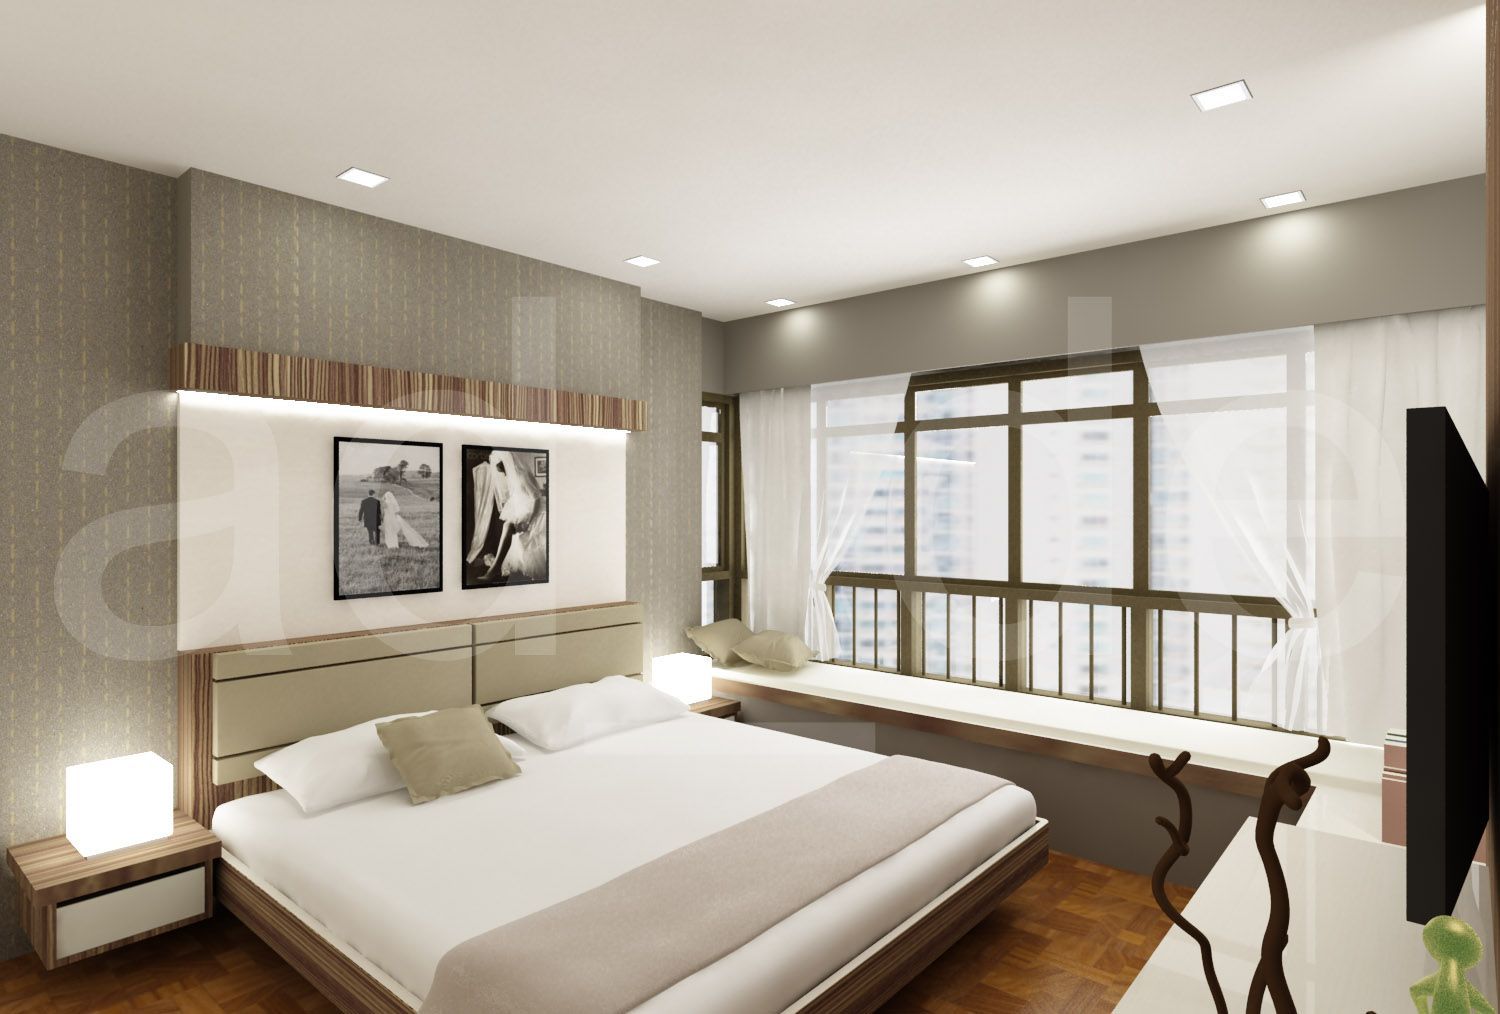 Attirant Interior Designer Adrian Lau: HDB And Condo Bedroom 3D Designs | Vincent  Interior Blog